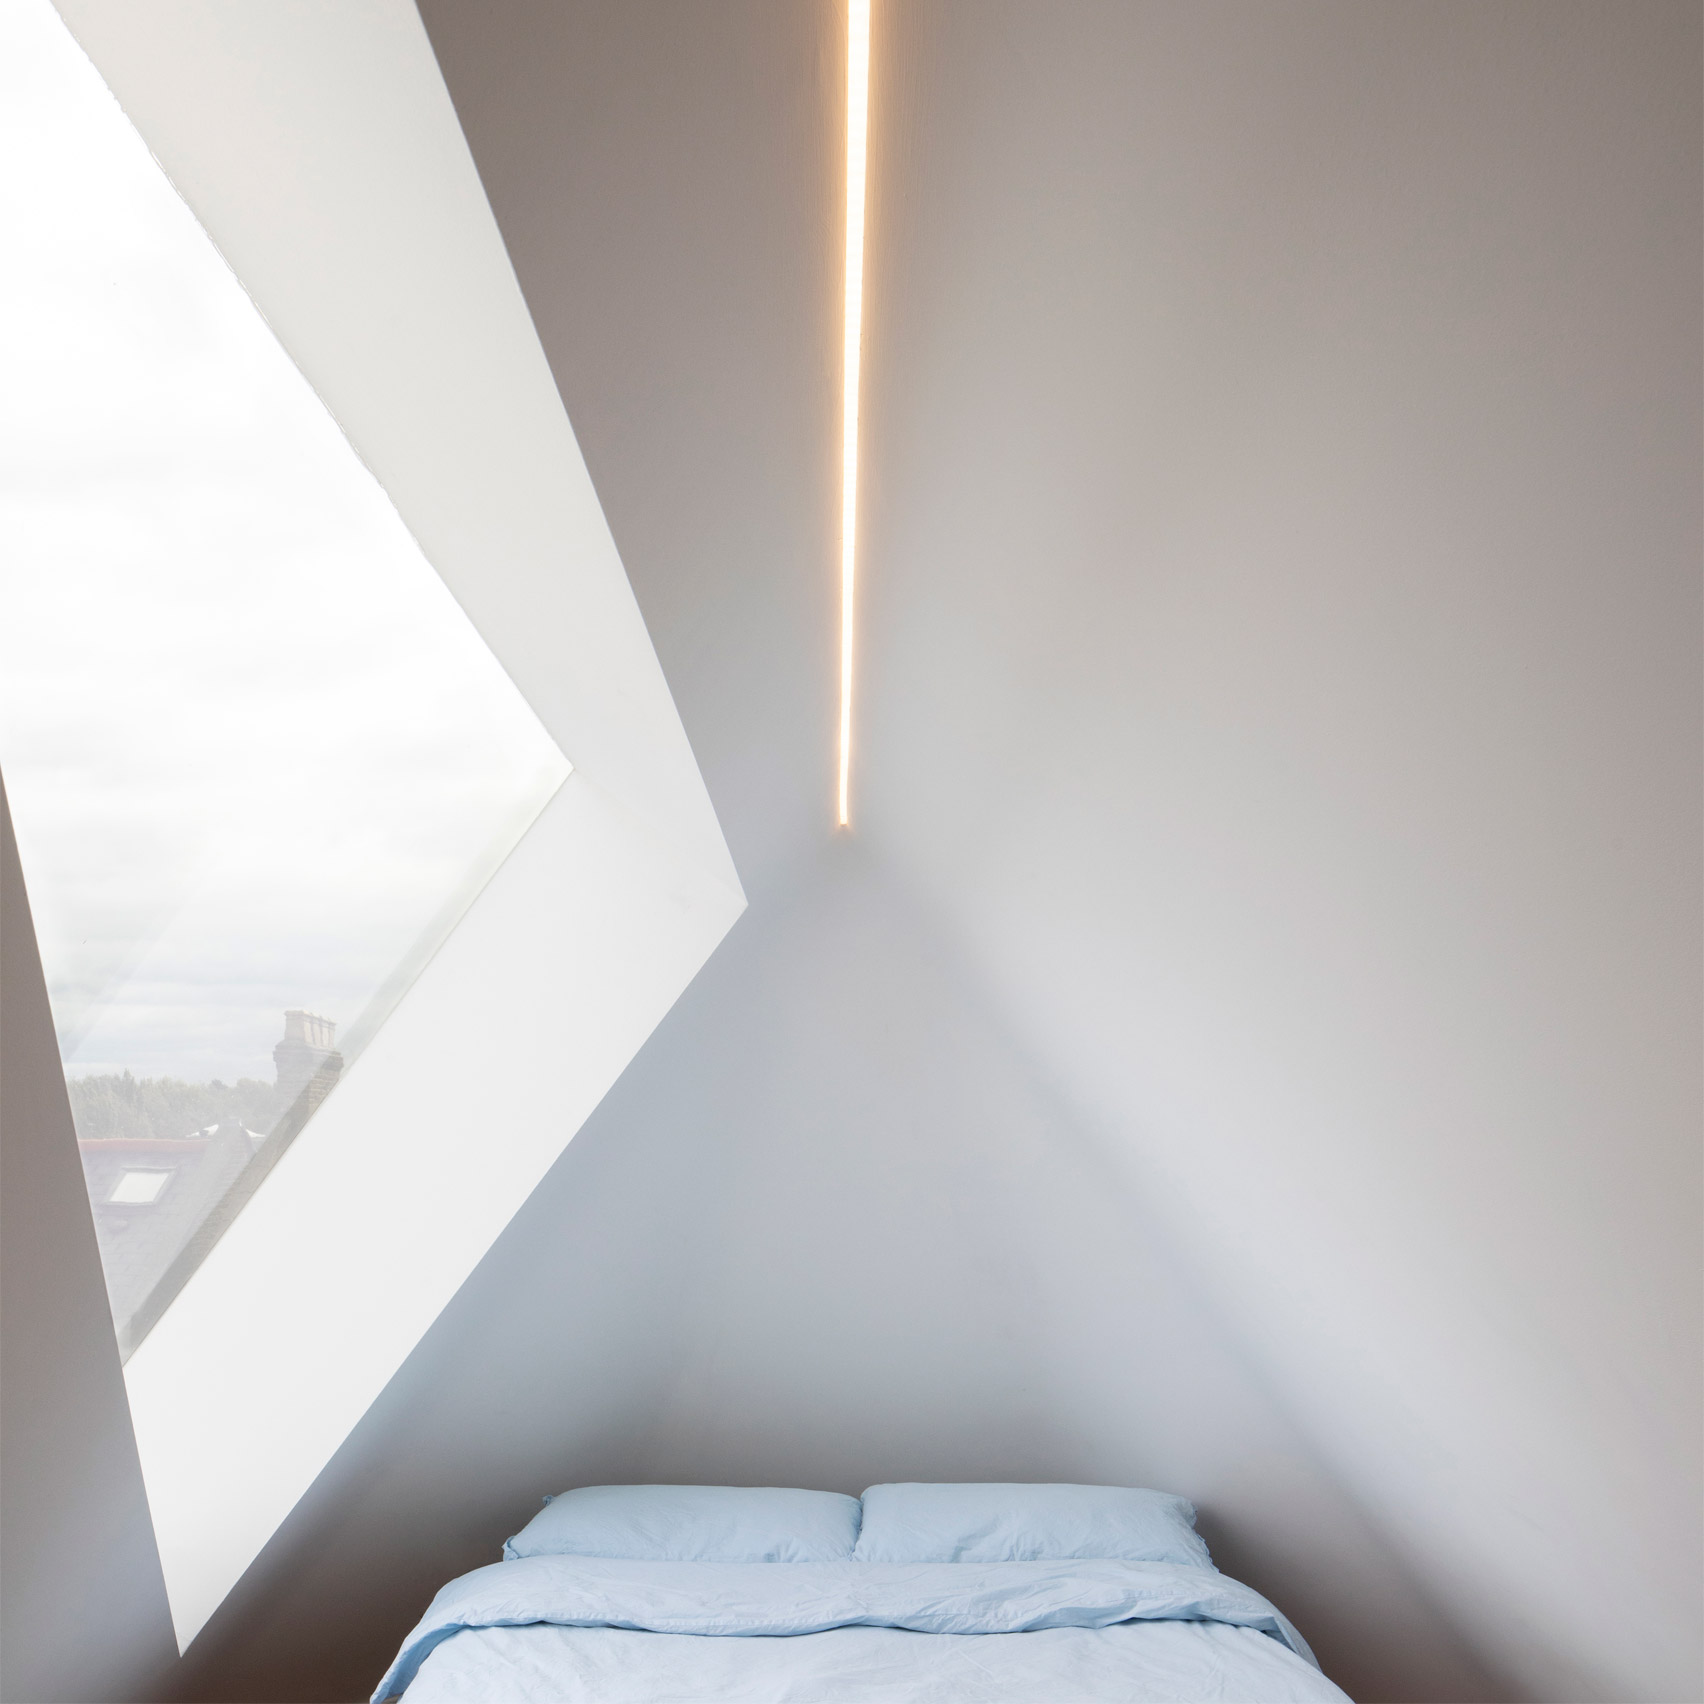 An angular white-walled bedroom with a skylight